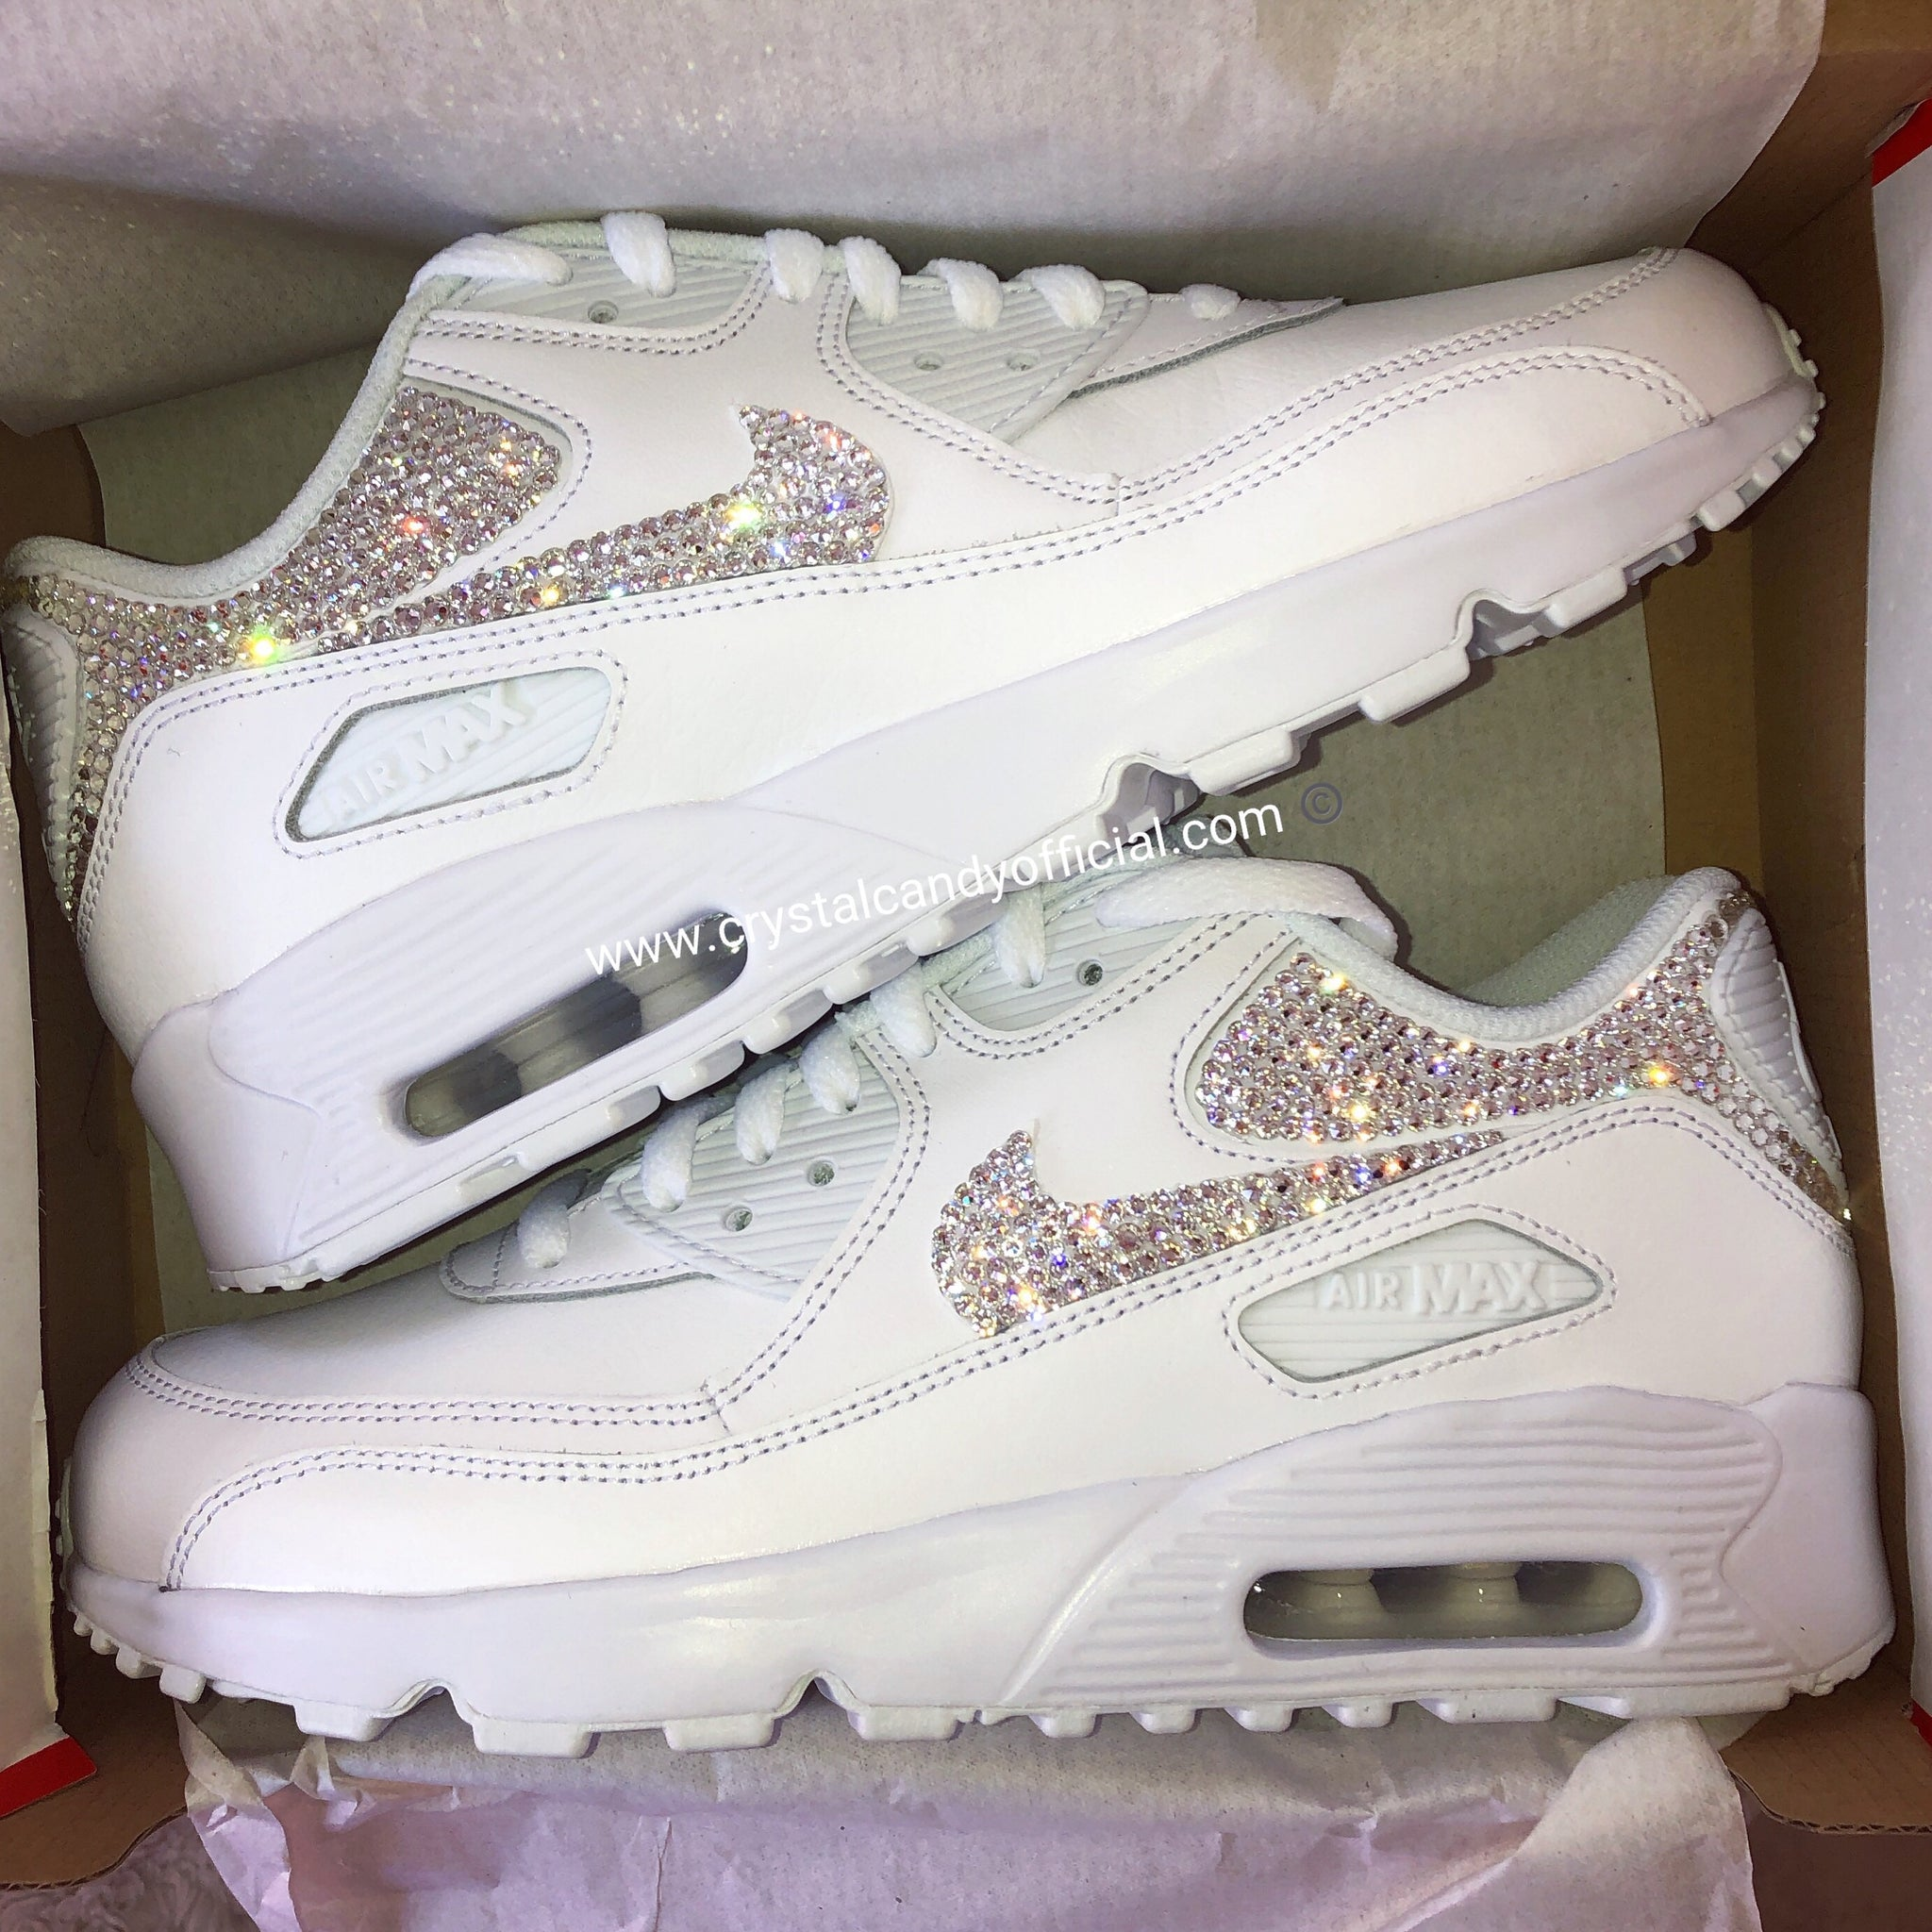 c32a637a8c Crystal Nike Air Max 90's in White (backs & ticks) - Crystal Candy Limited